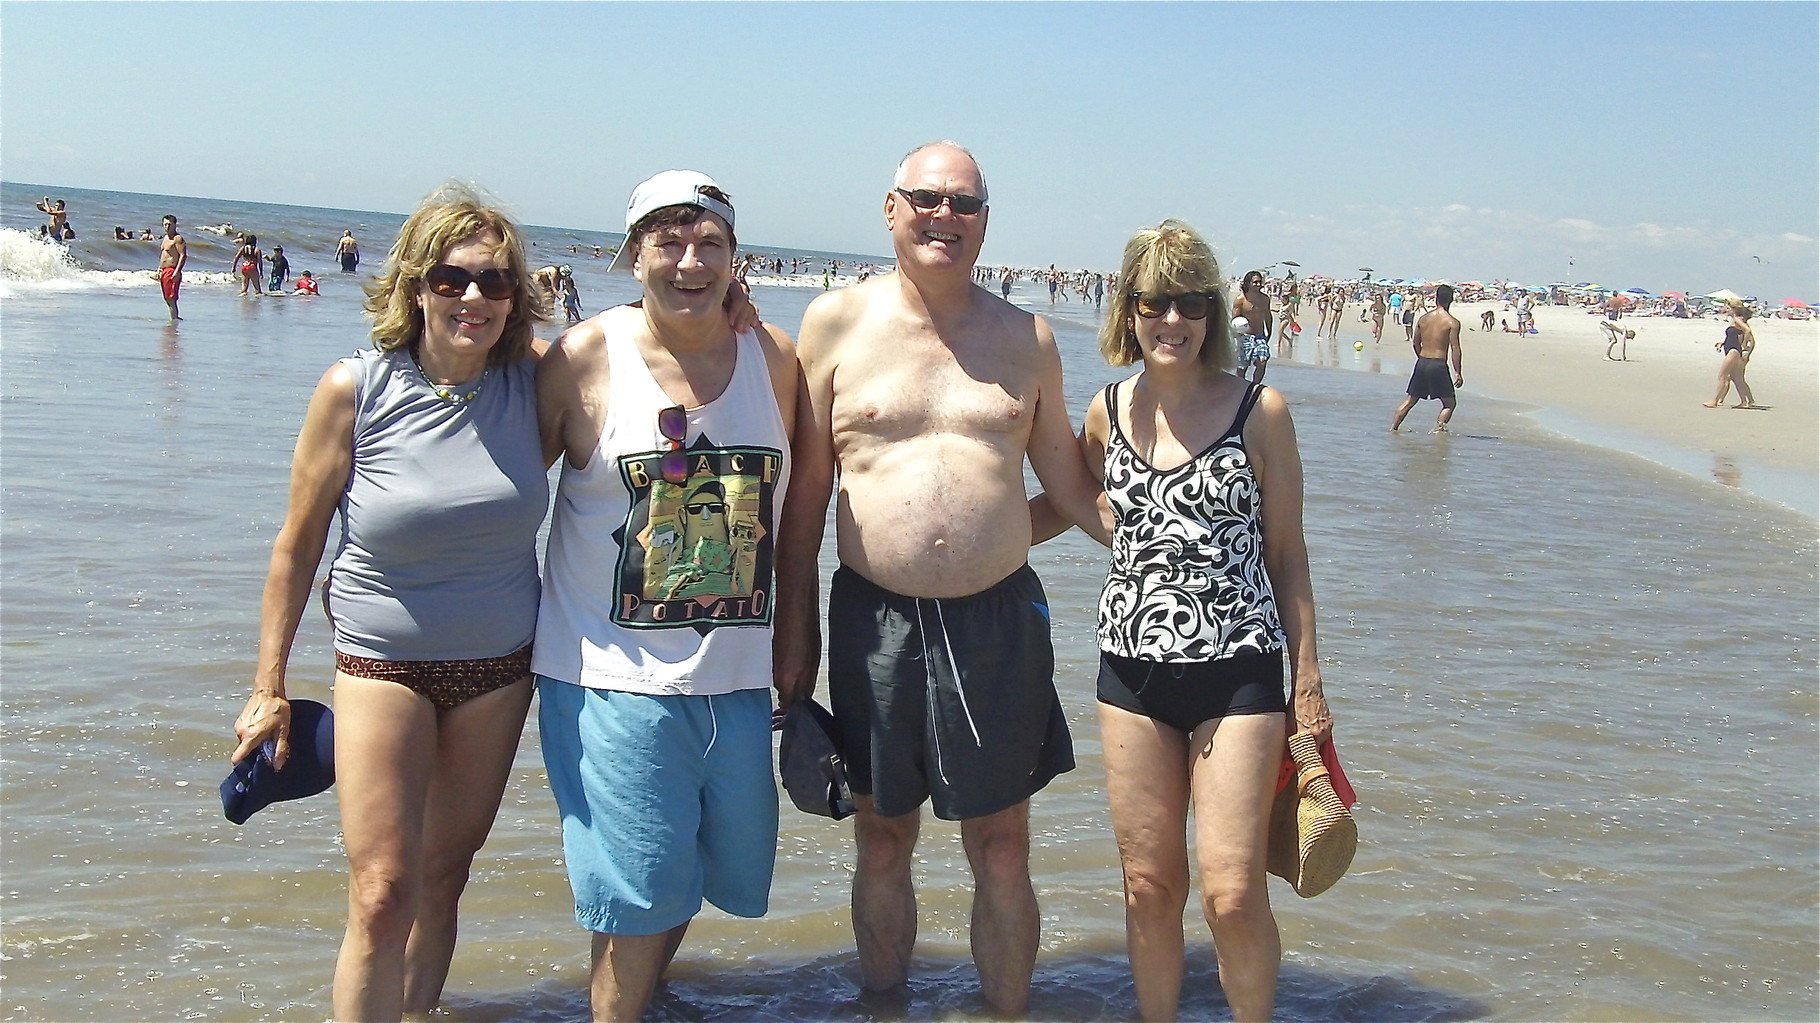 Lorraine, John, Bernd & Nancy, Jones Beach, LI